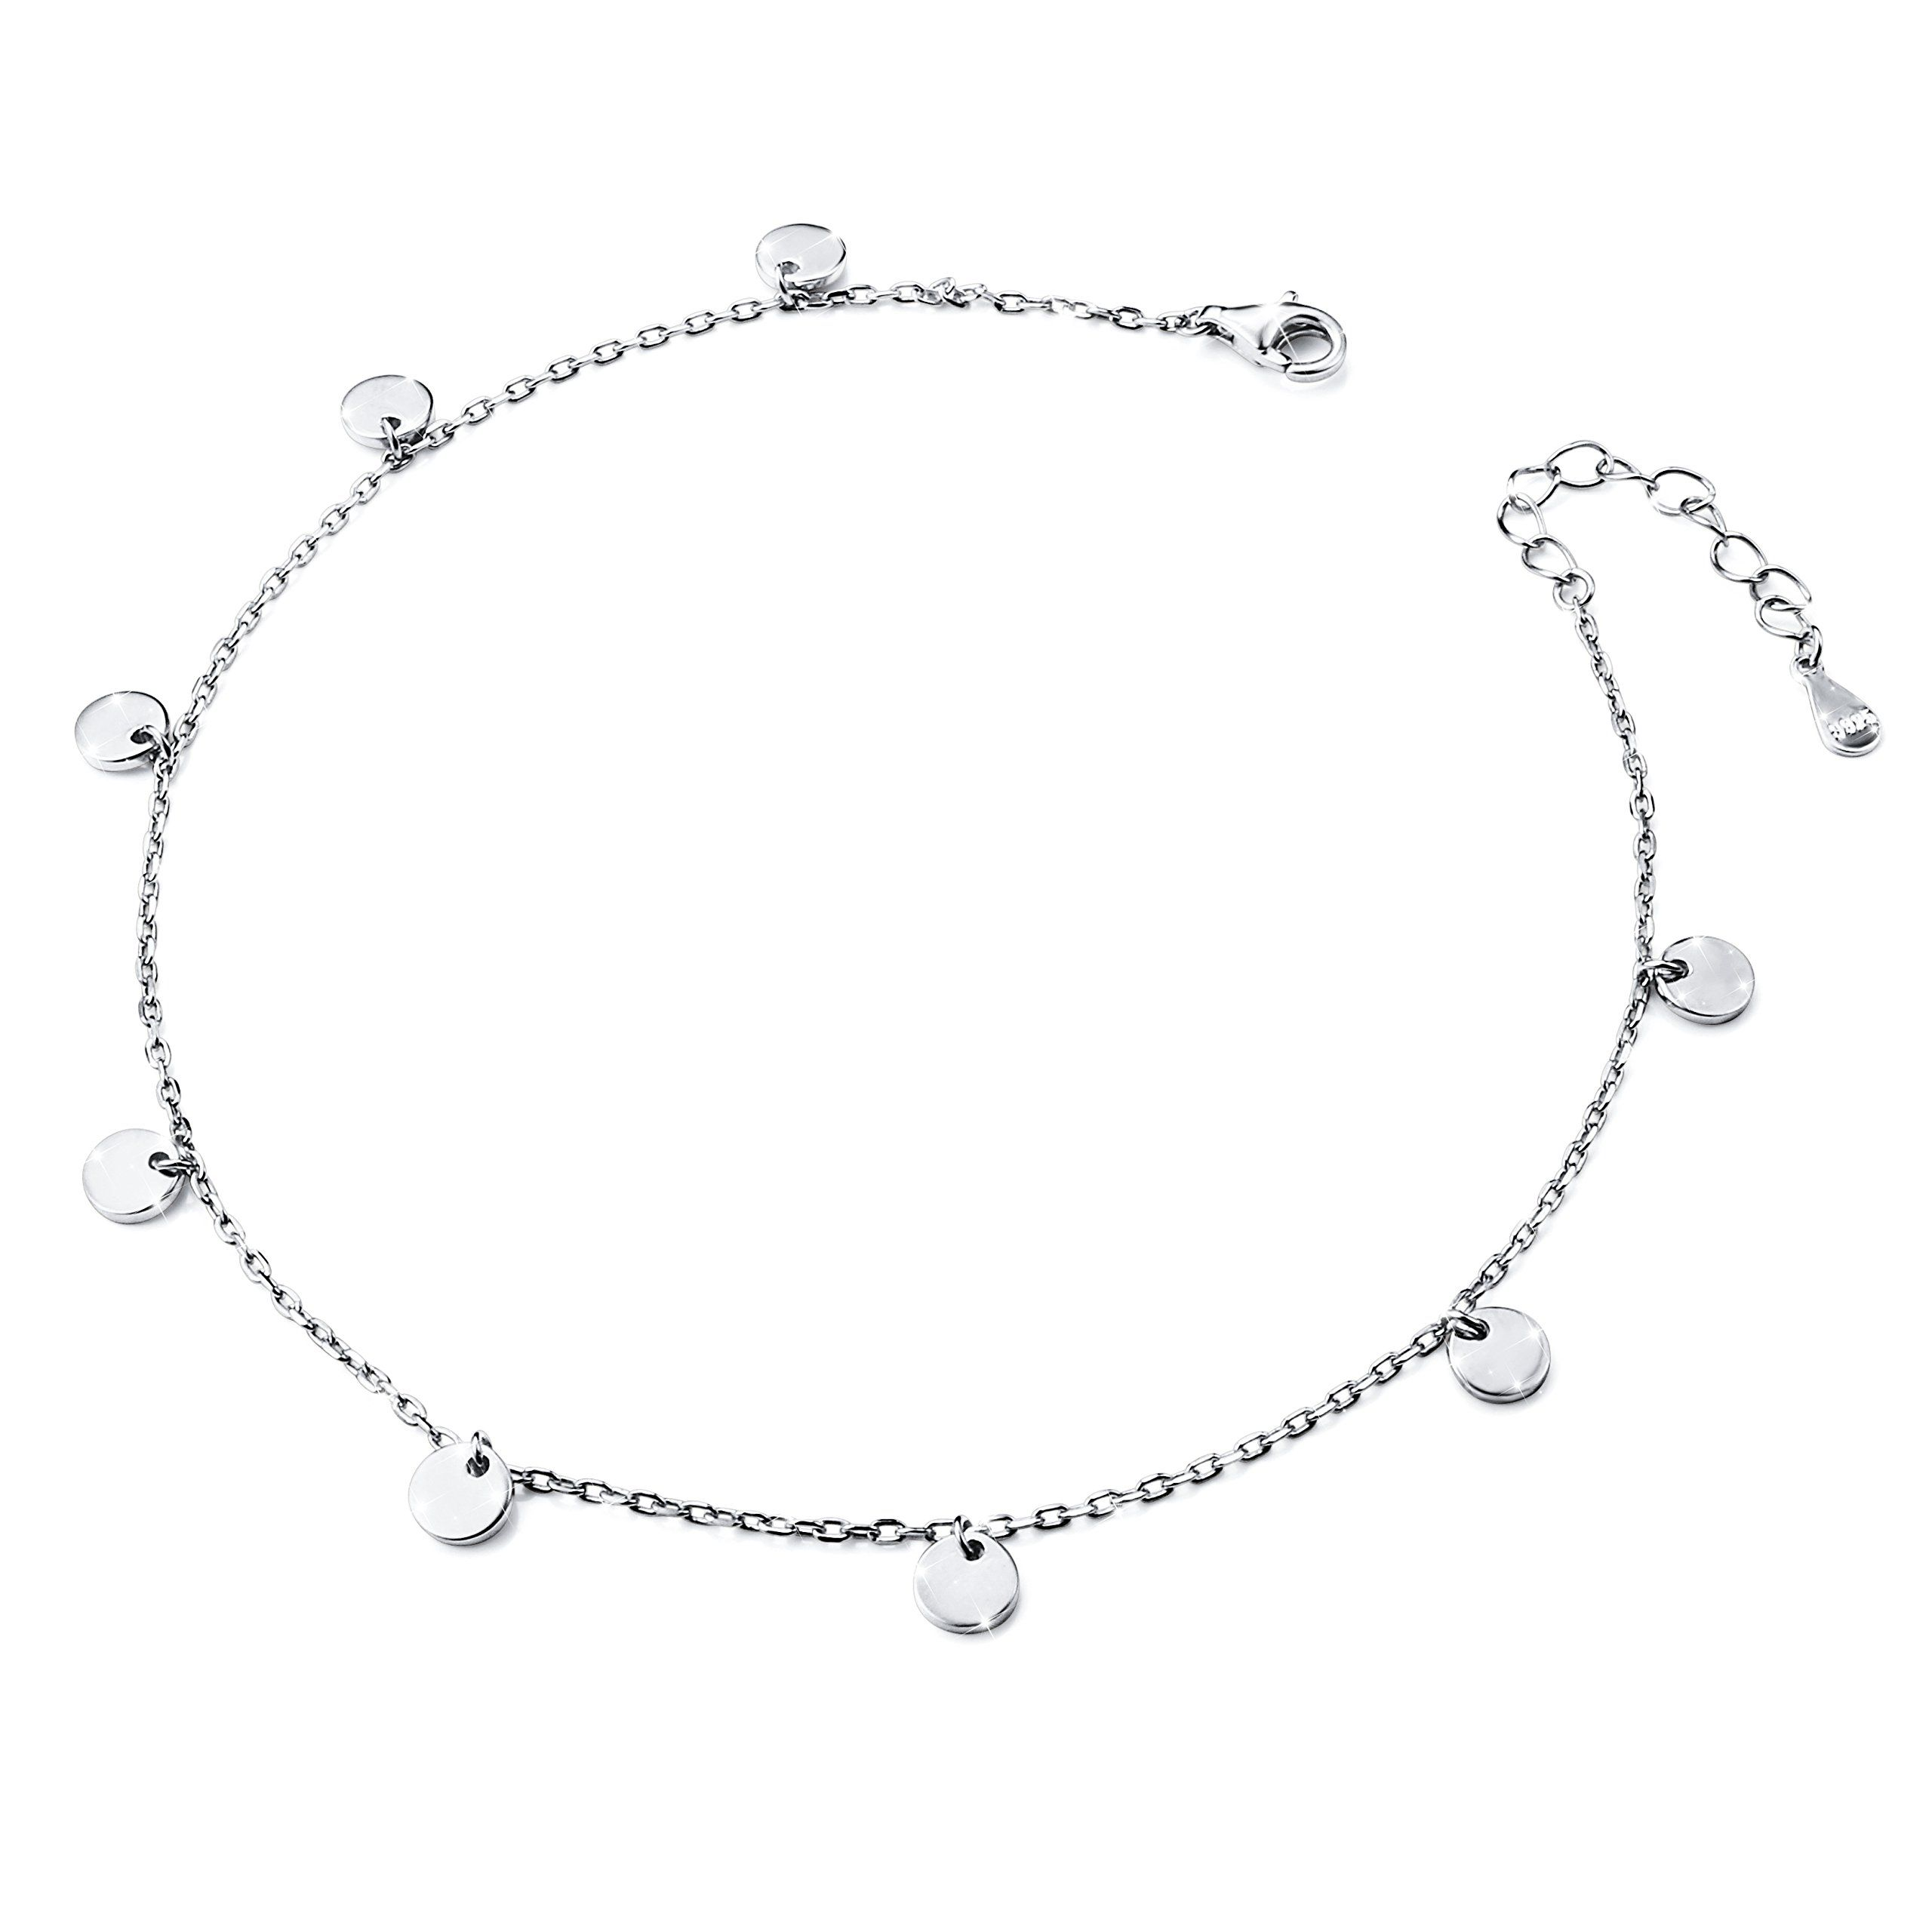 anklet silver products for ladies sarang girls payal polished anklets img